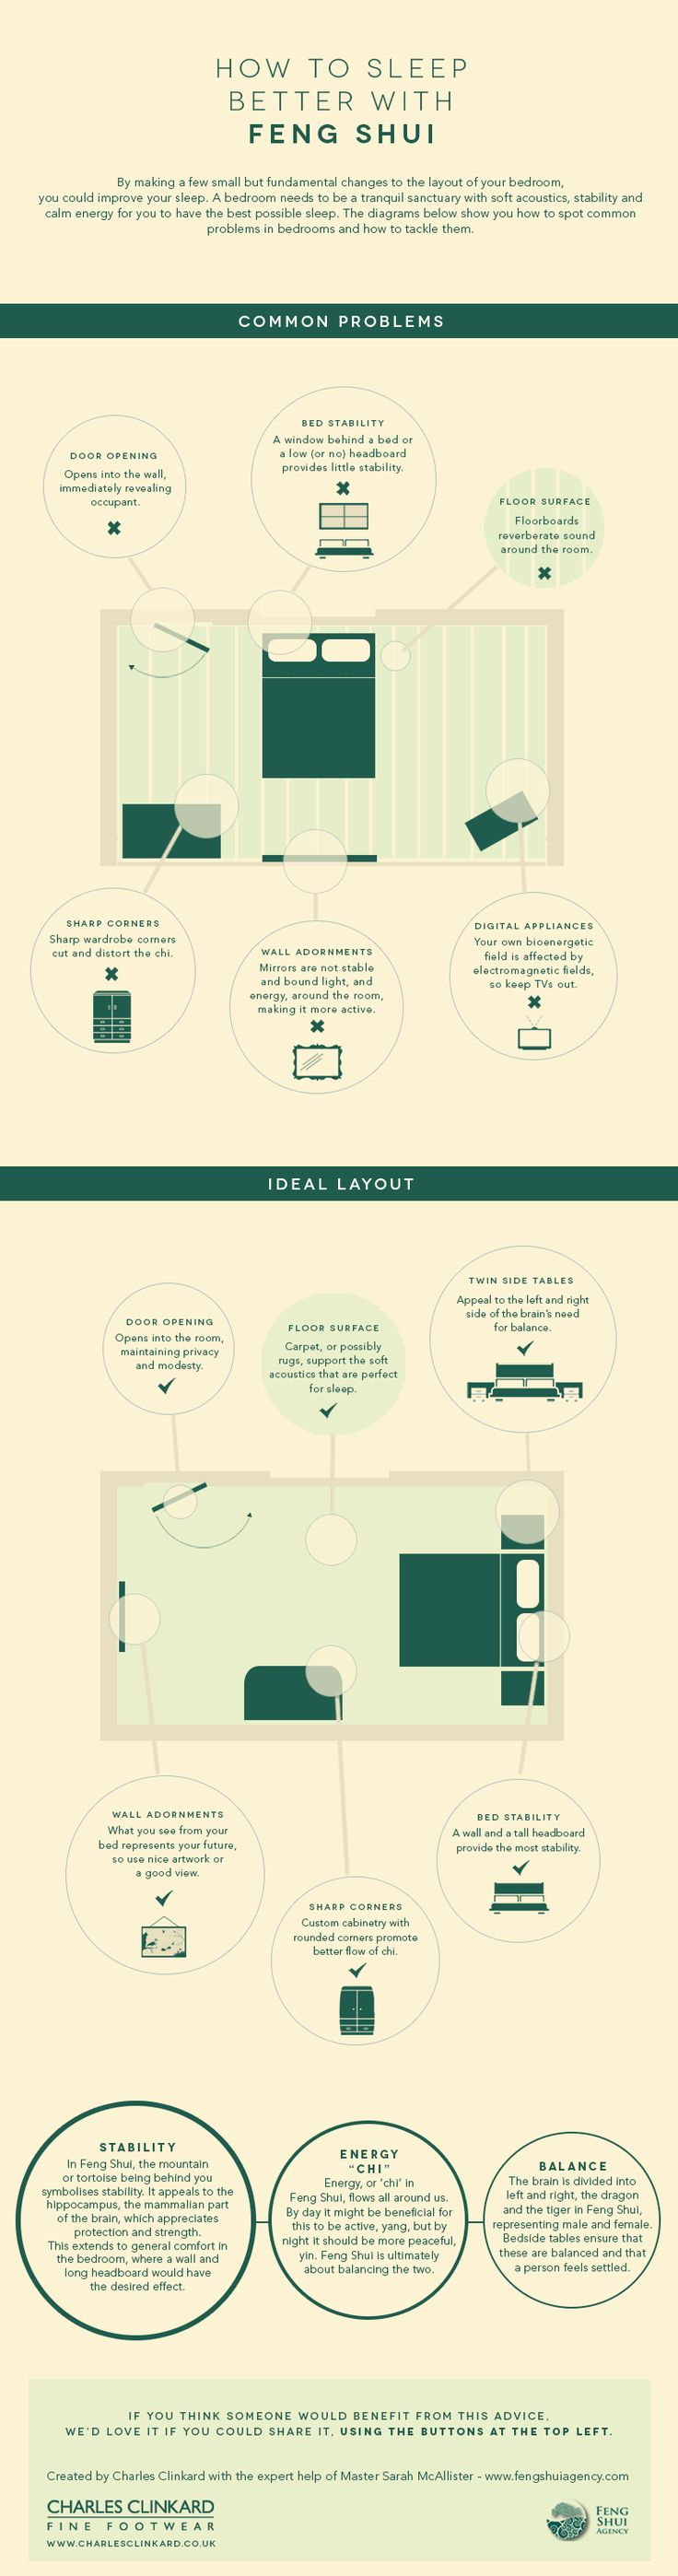 Attractive An Interesting Infographic About How To Promote Better Sleep Using Feng Shui  In Your Bedroom